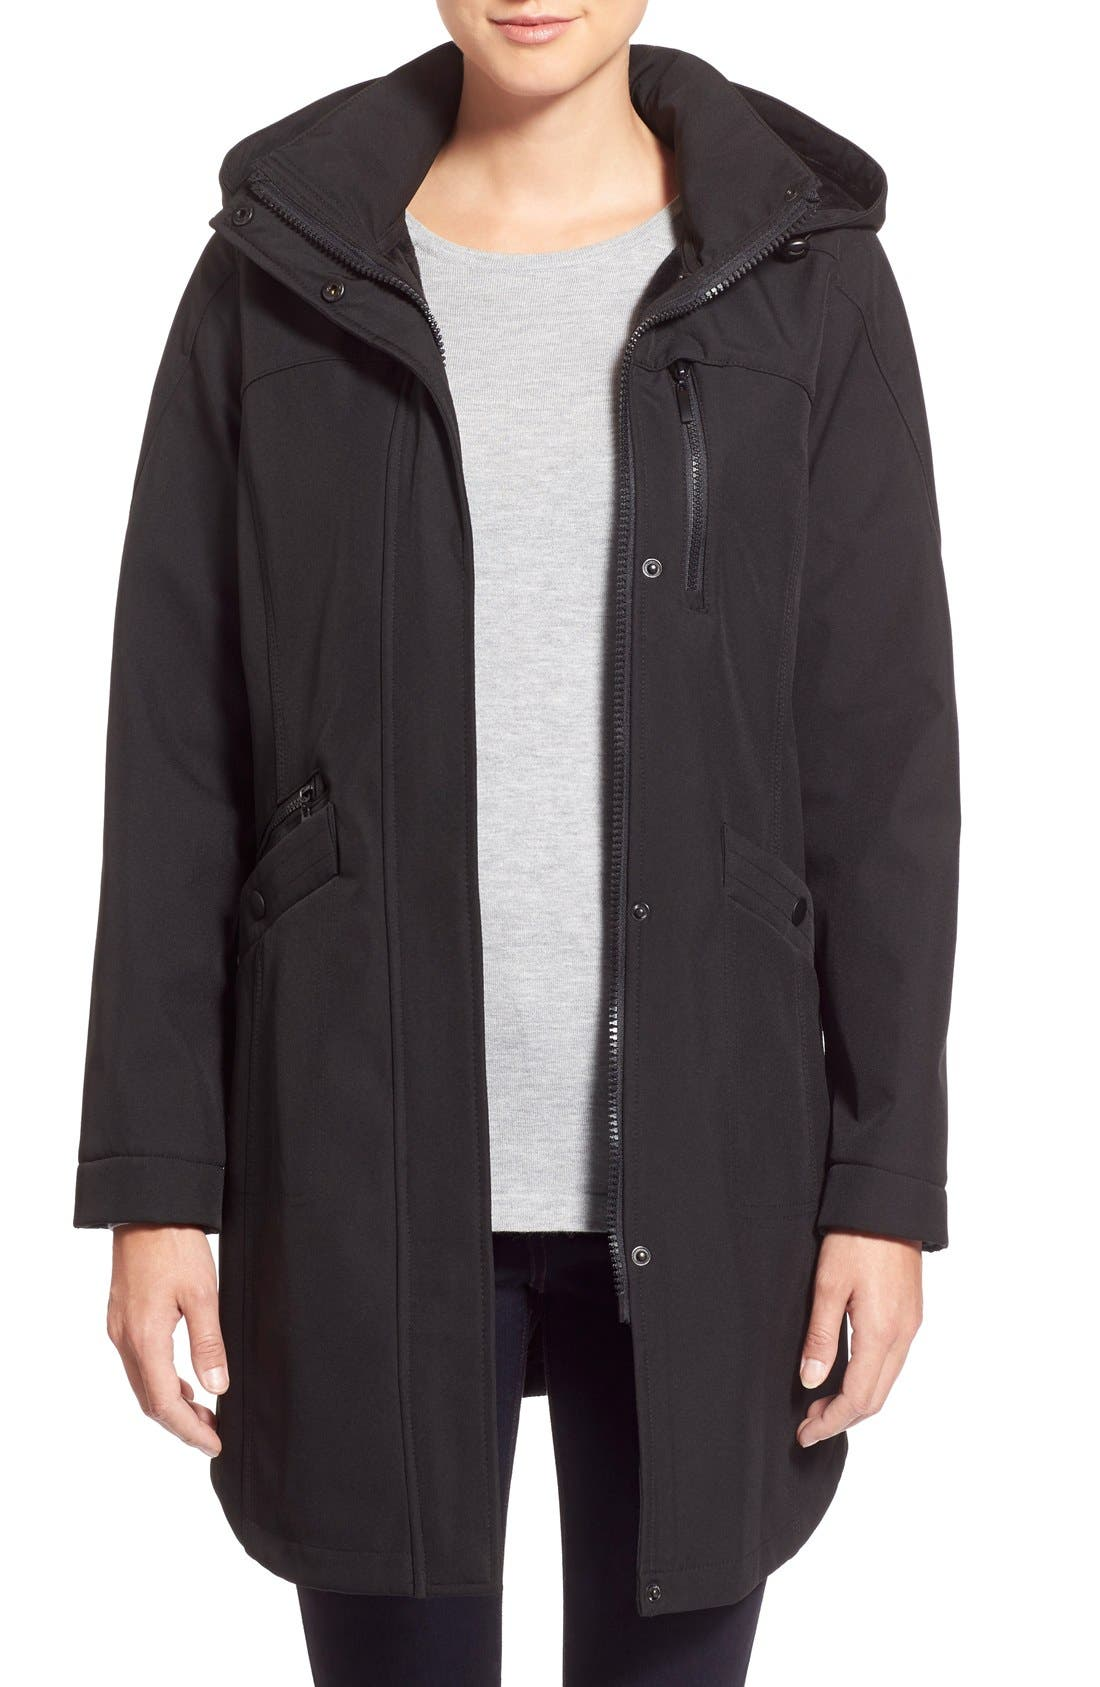 KRISTEN BLAKE Crossdye Hooded Soft Shell Jacket